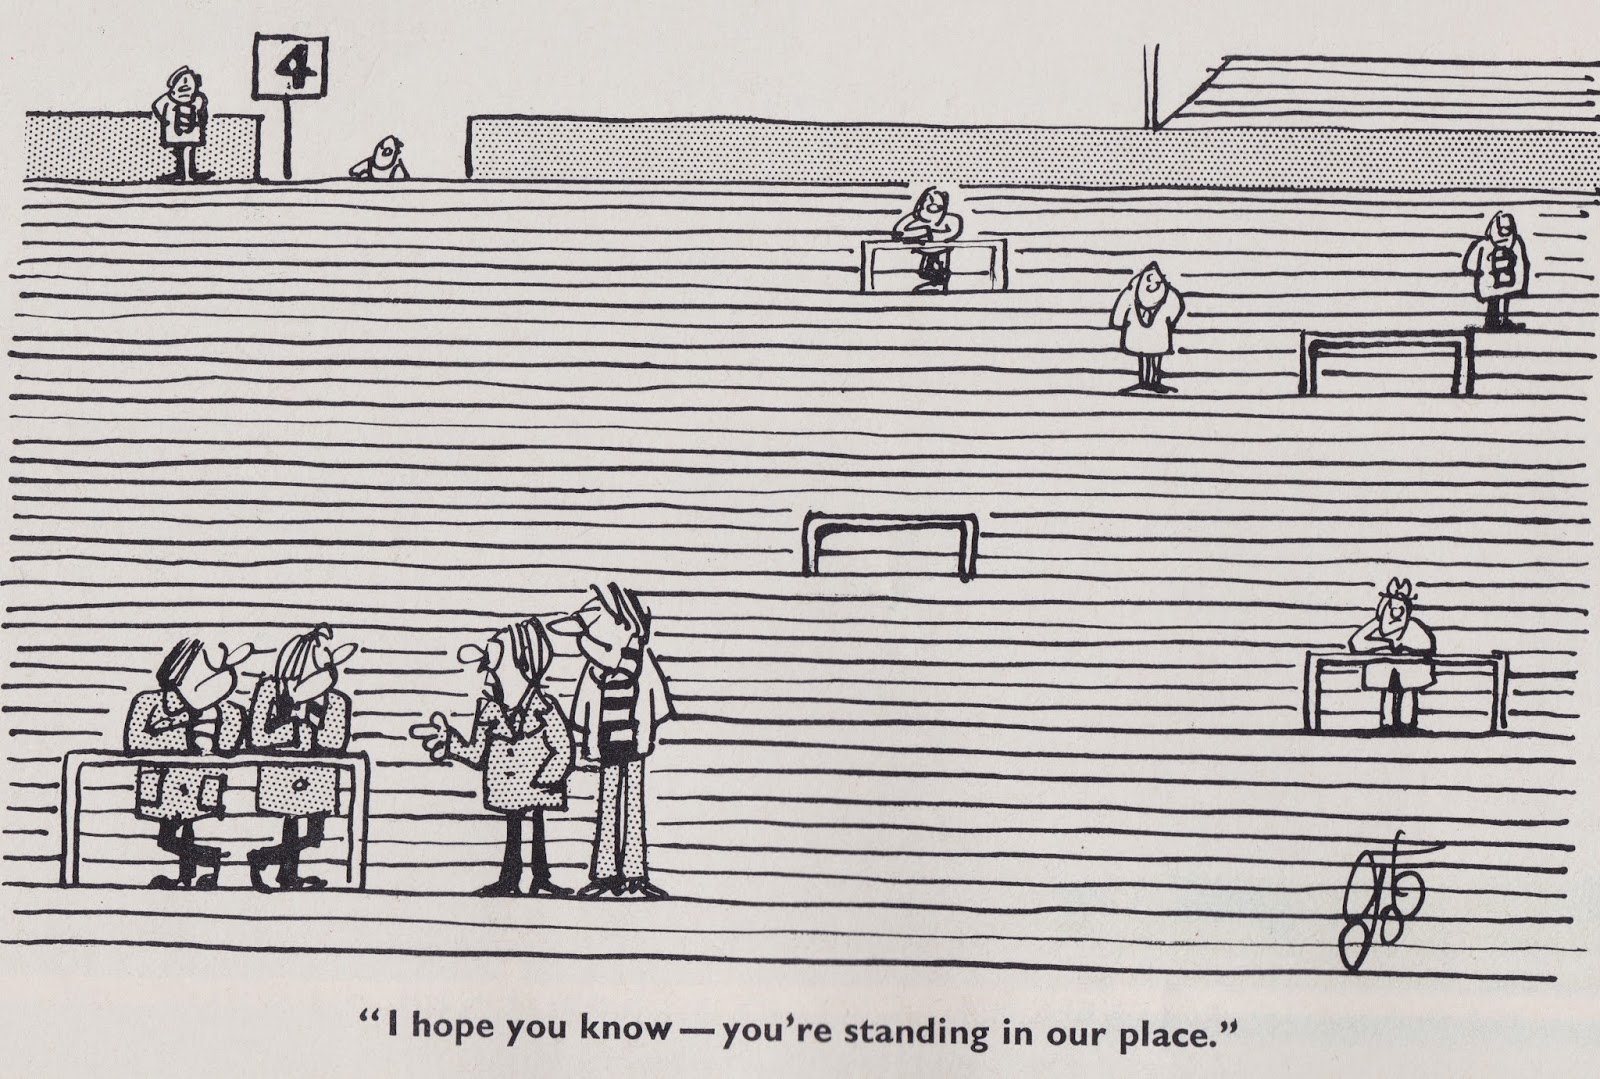 """I hope you know you're standing in our place."" Old school football cartoon."